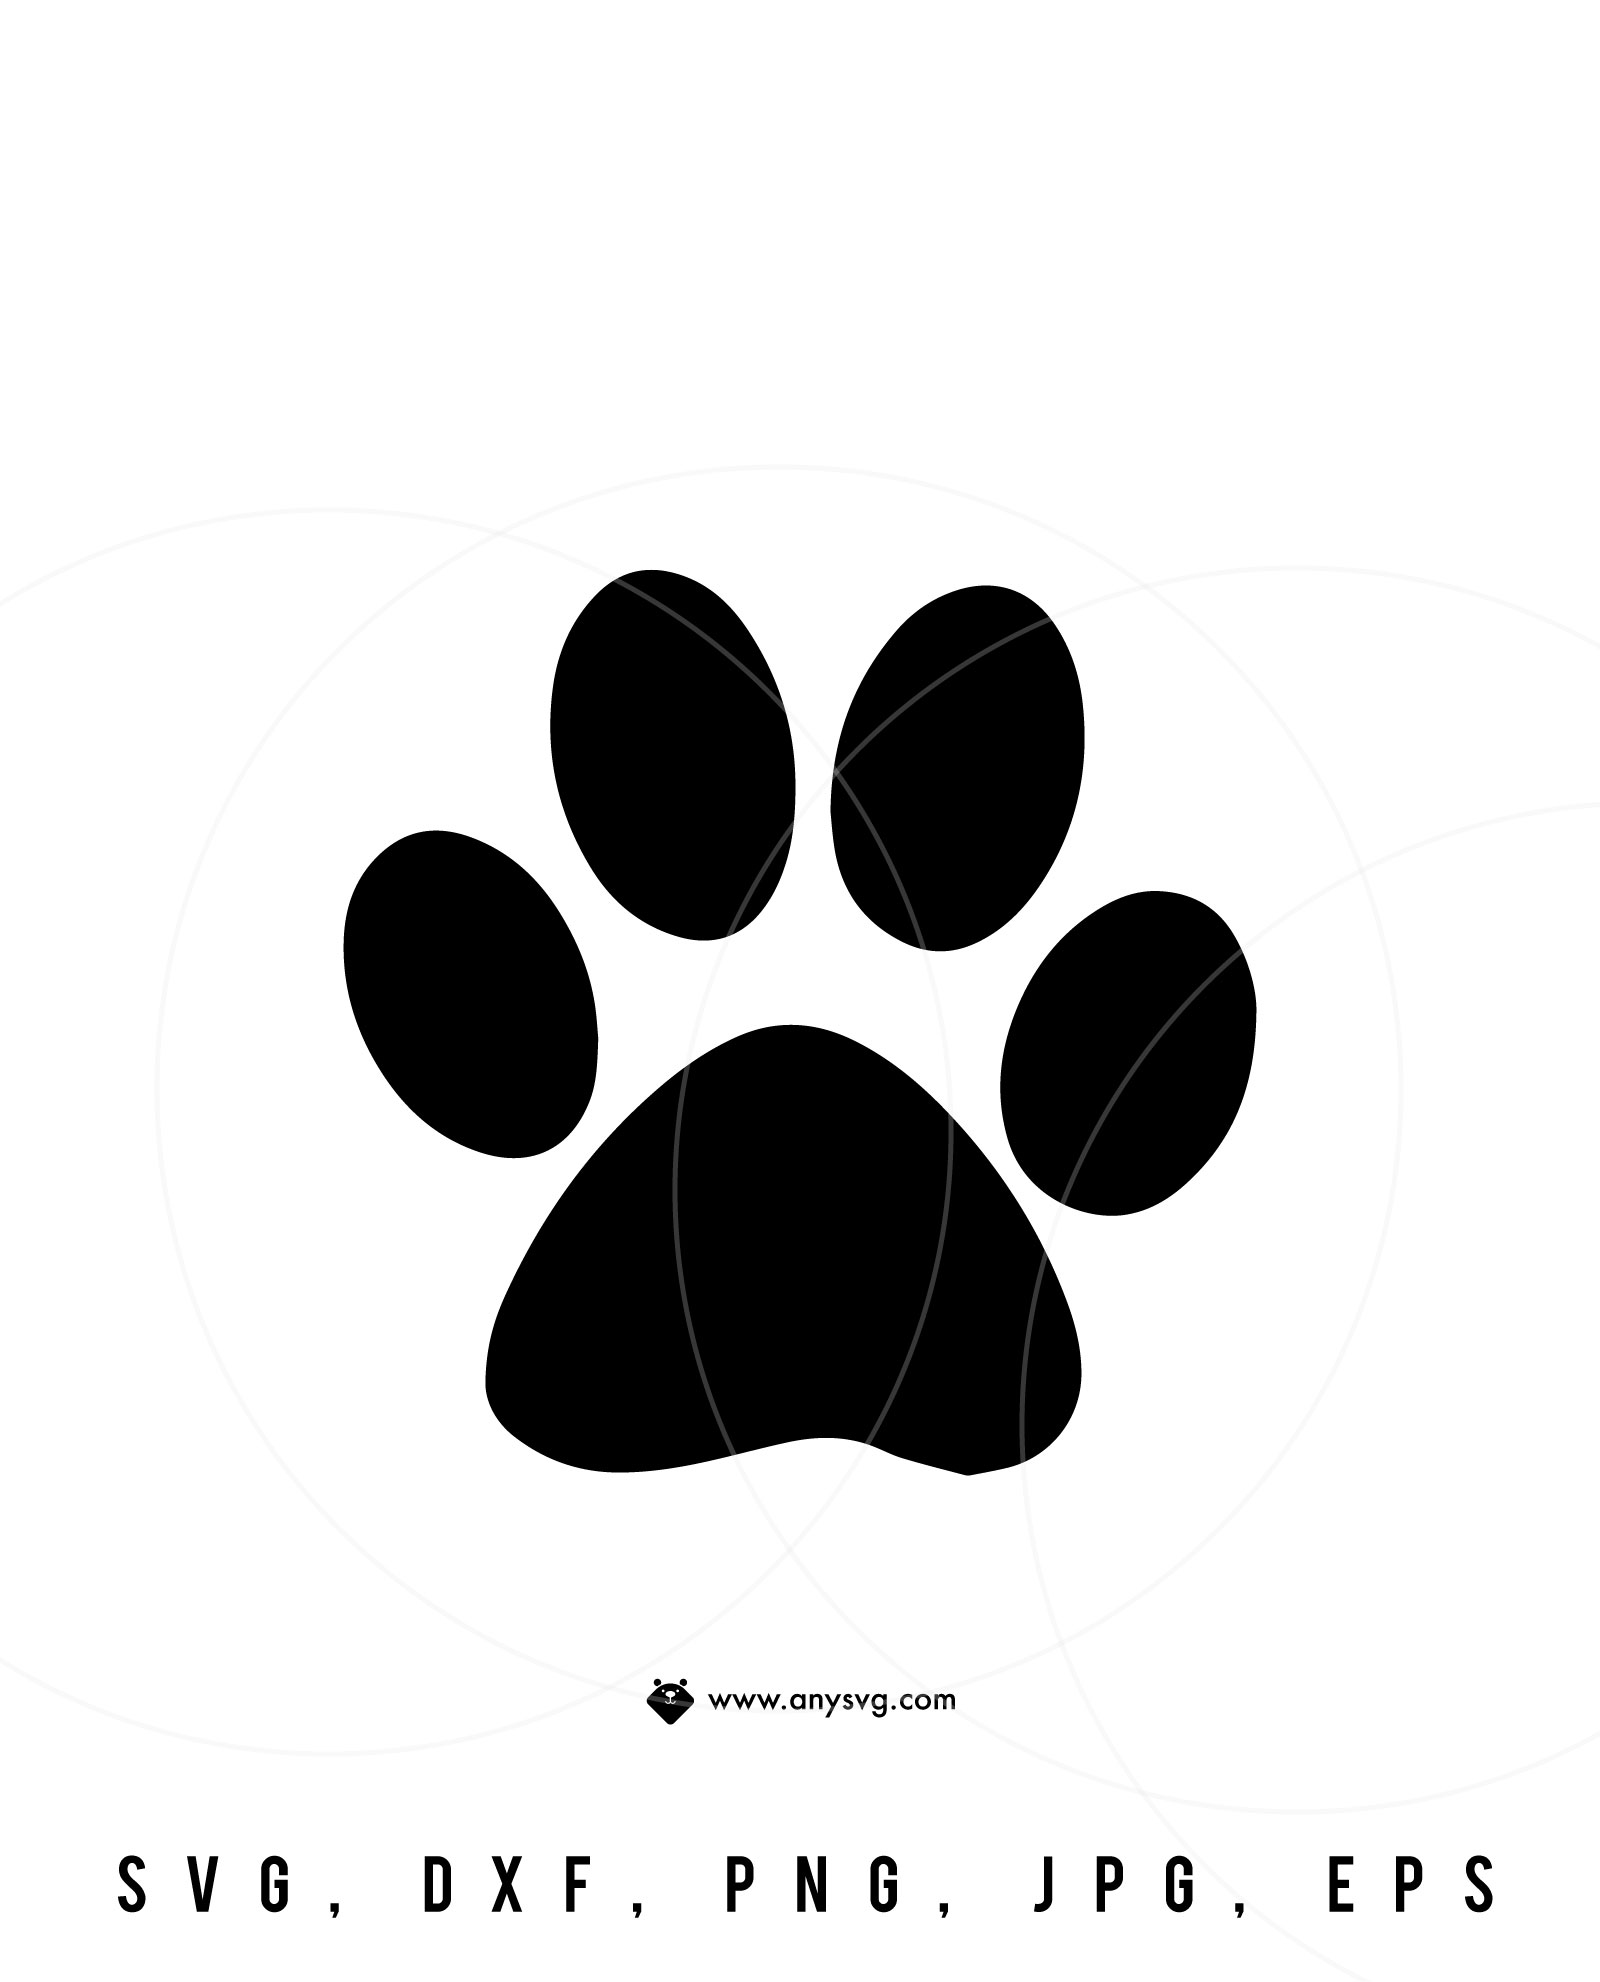 Download Paw Print SVG - DXF, PNG & EPS File for Cutting Machines ...